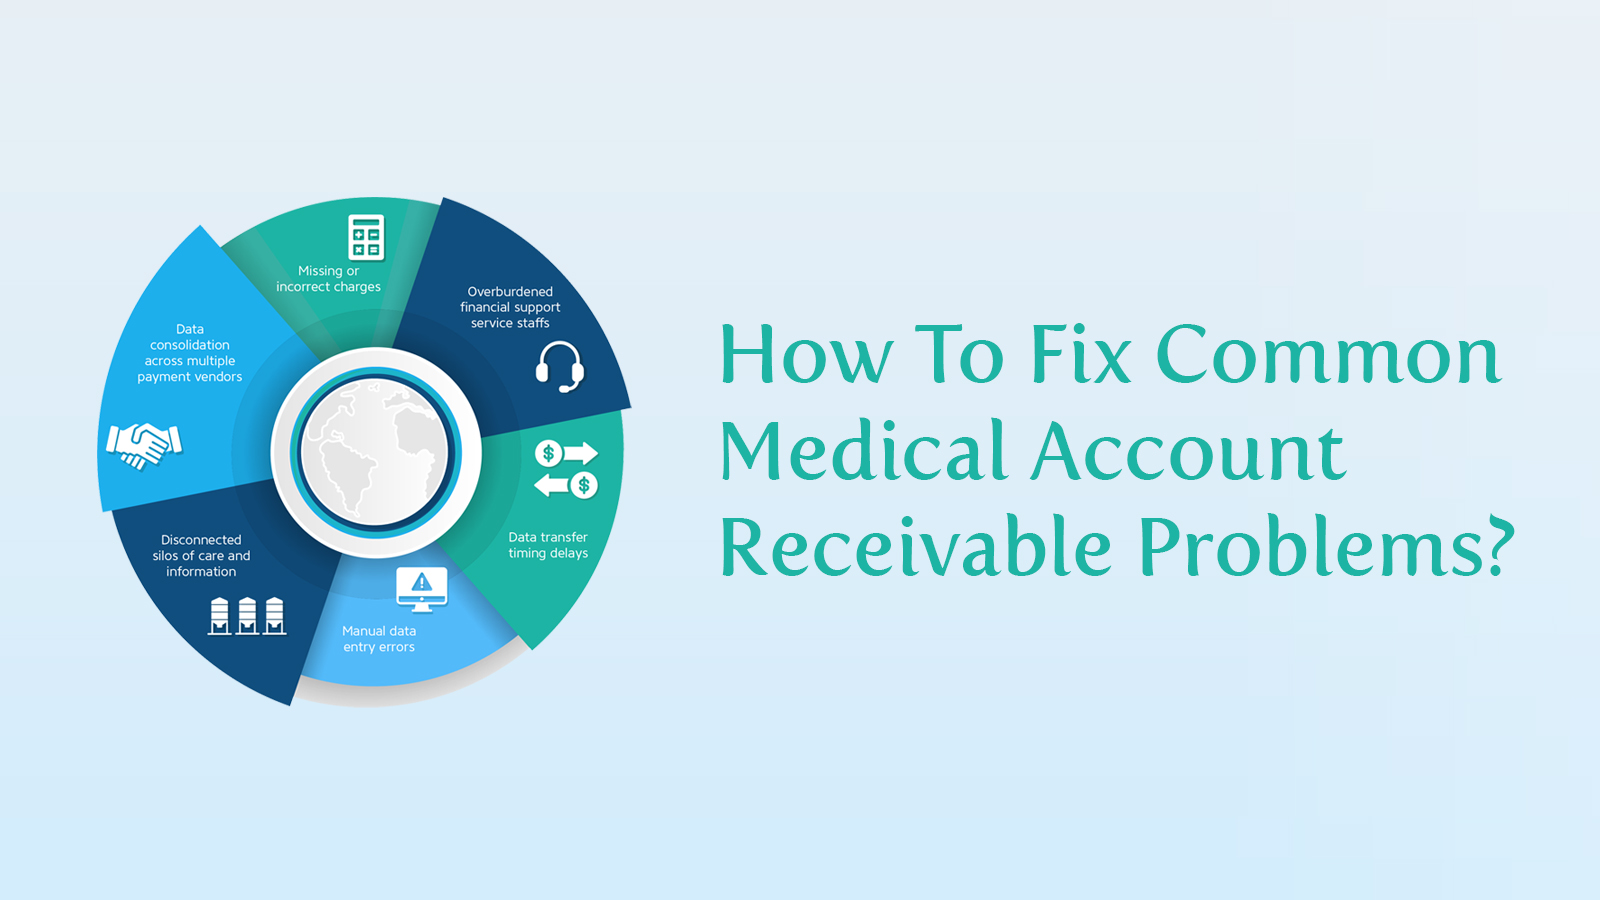 How To Fix Common Medical Account Receivable Problems